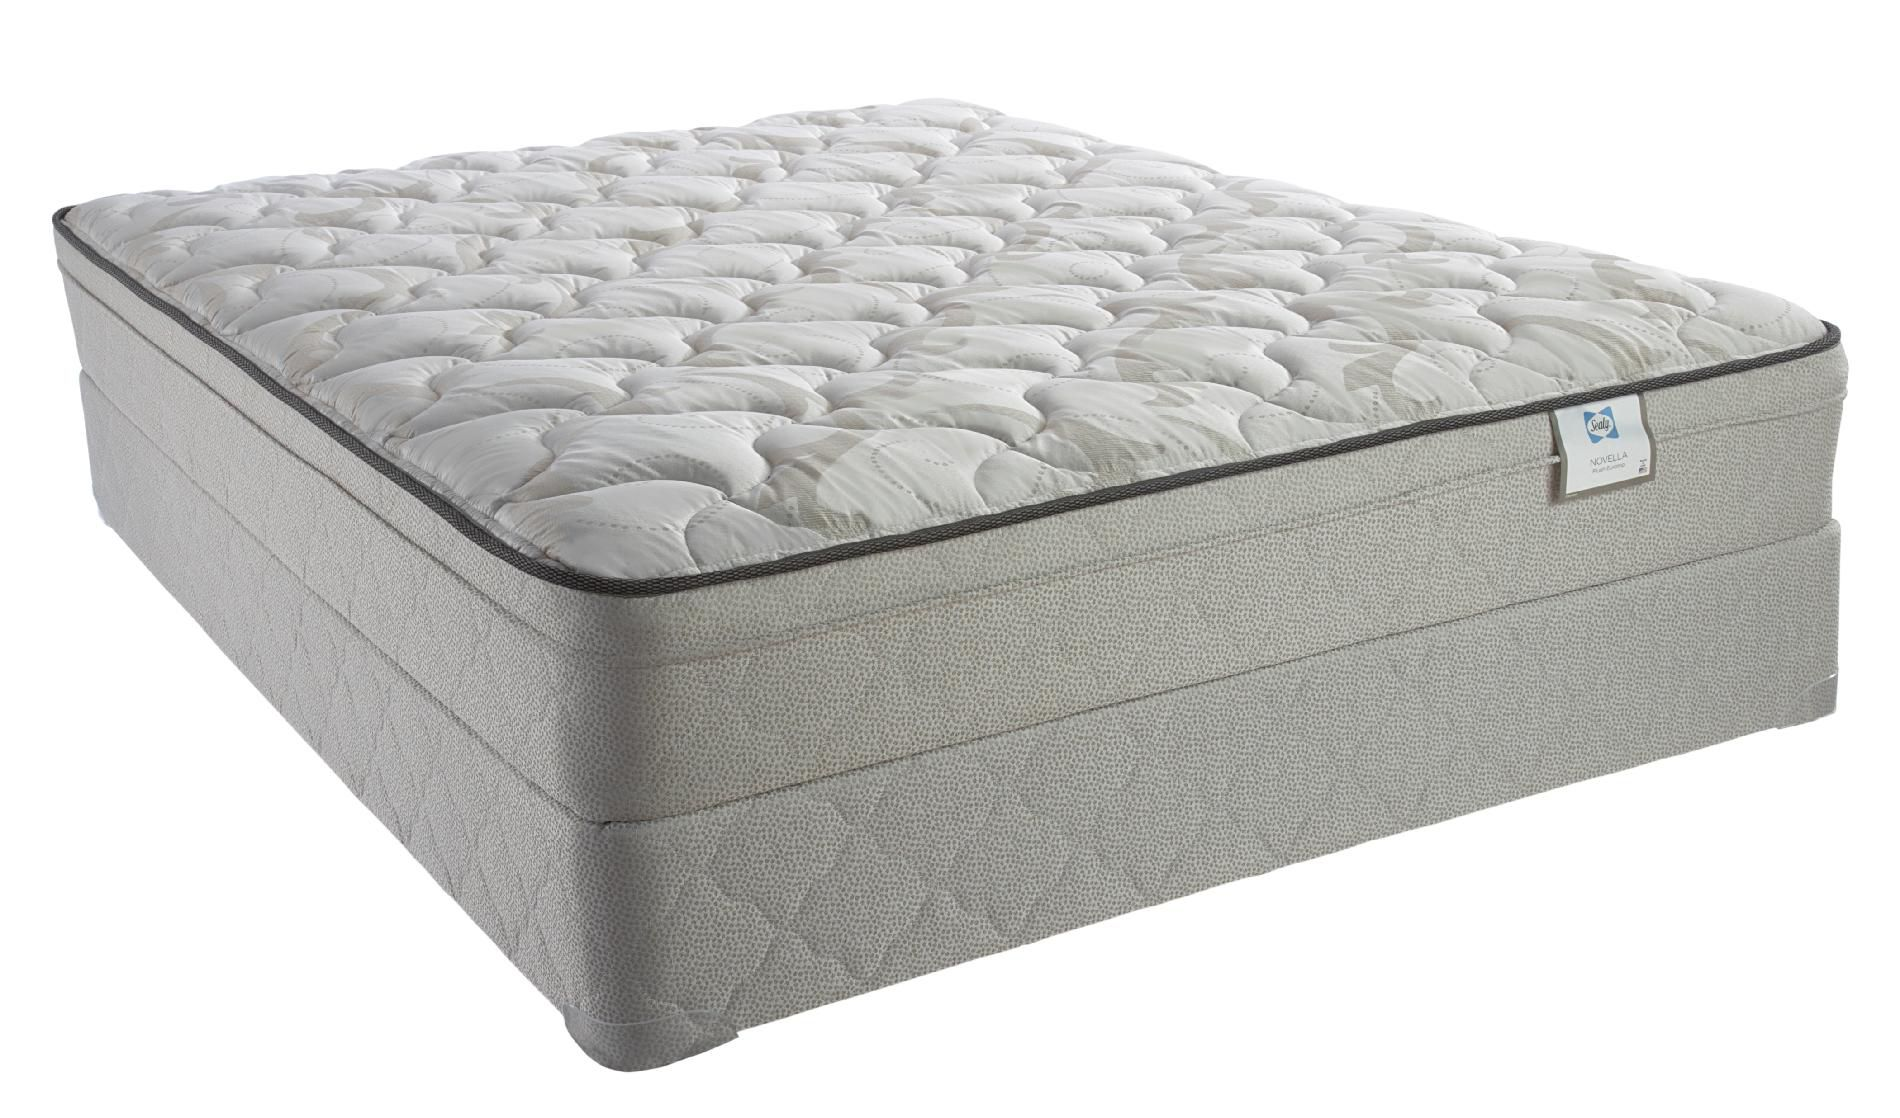 Aragon-Select-Plush-Euro-Pillowtop-Cal-King-Mattress-Only